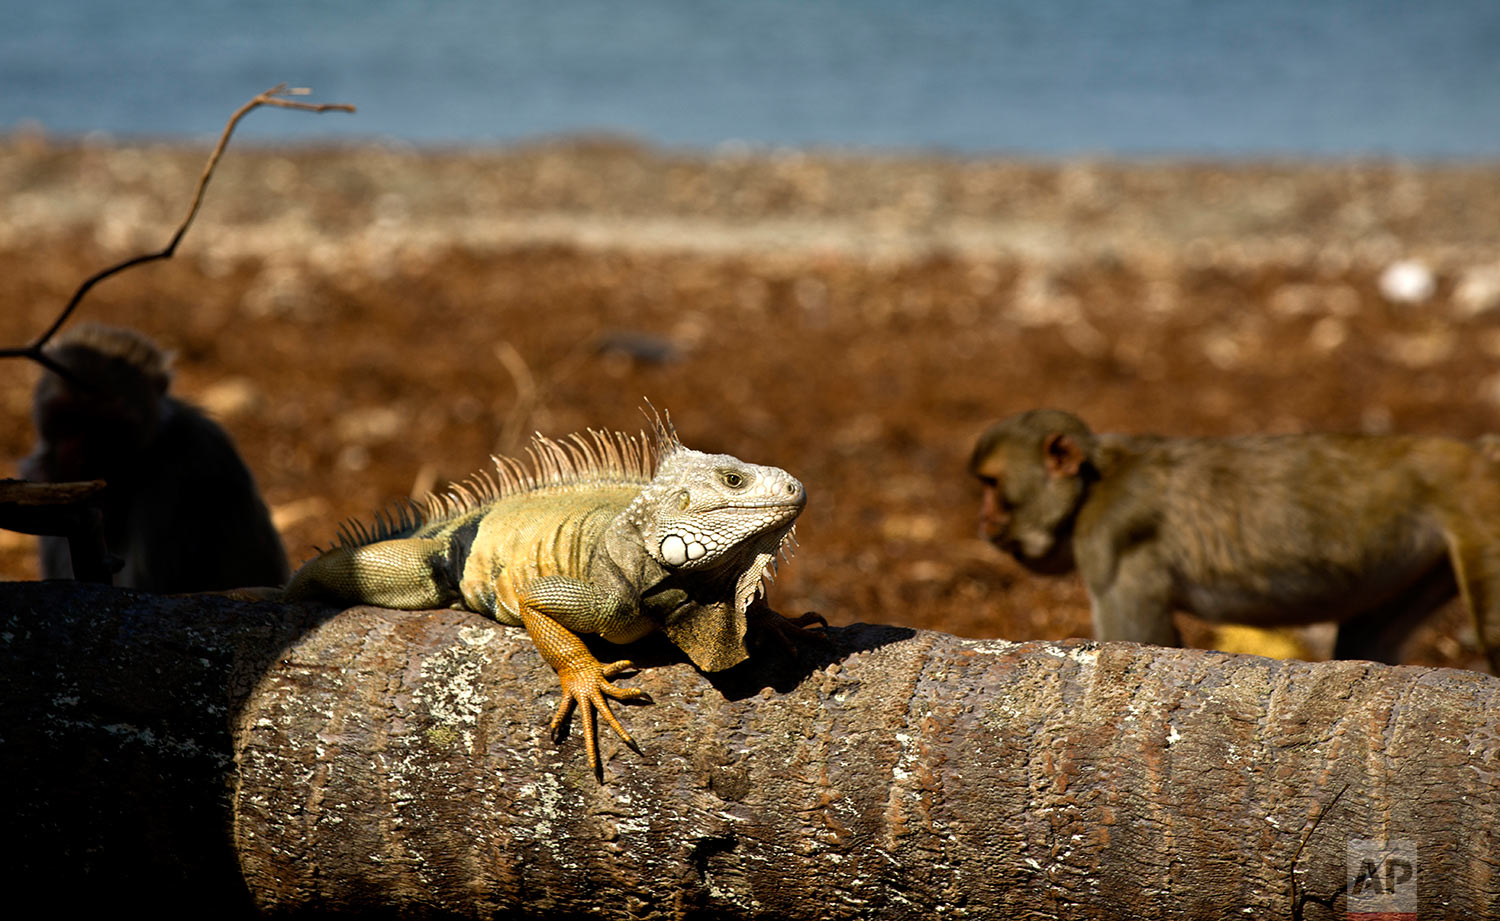 In this Wednesday, Oct. 4, 2017 photo, an iguana sunbathes as monkeys walk behind on Cayo Santiago, known as Monkey Island, in Puerto Rico, one of the world's most important sites for research into how primates think, socialize and evolve. (AP Photo/Ramon Espinosa)